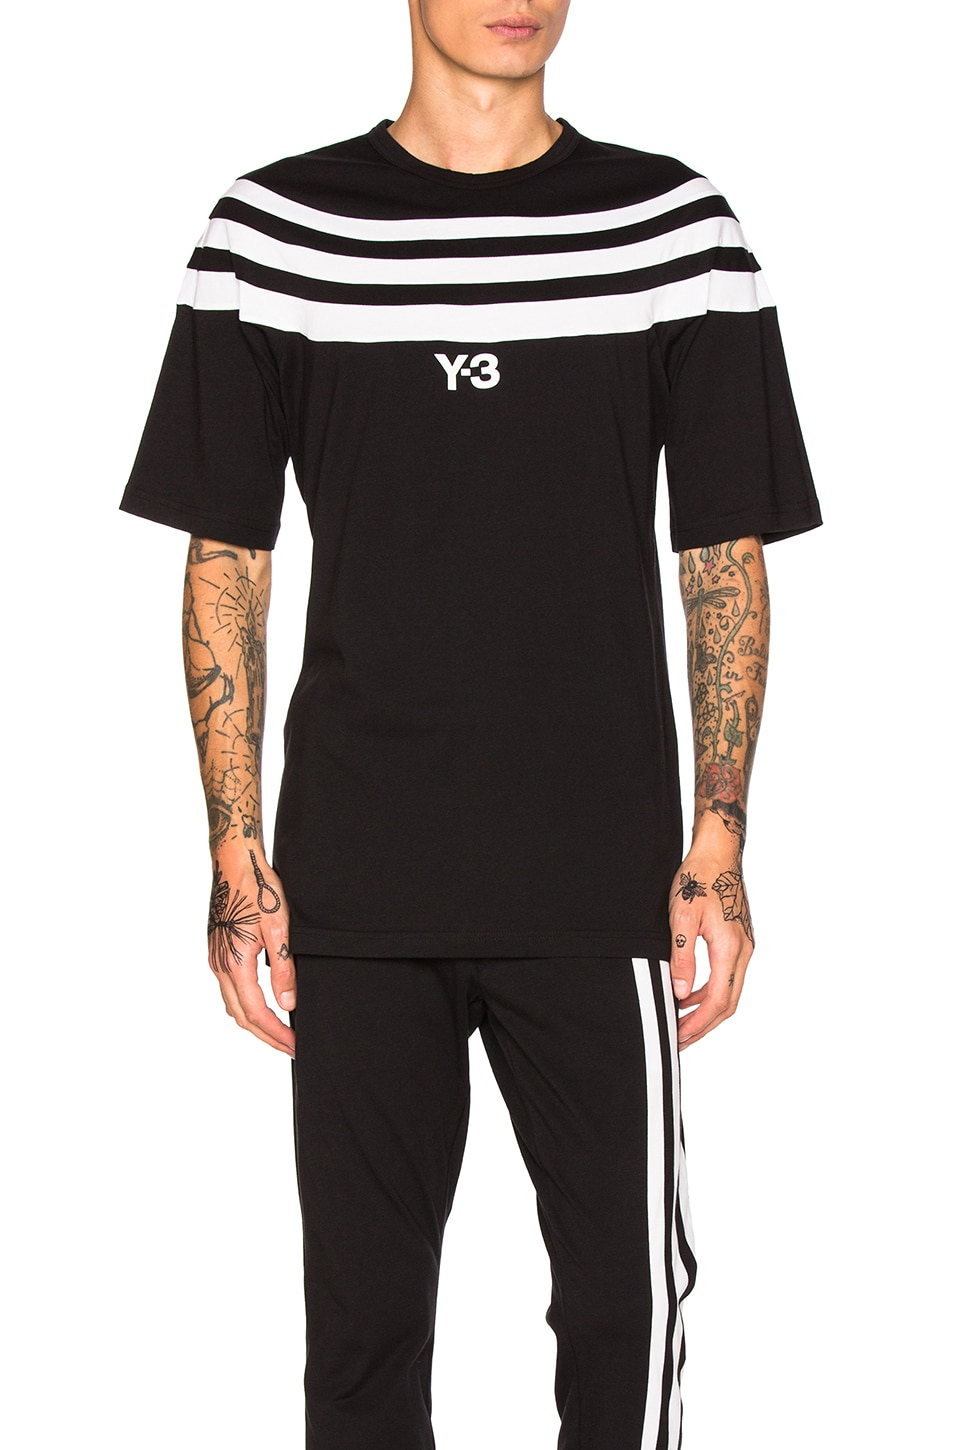 Photo of 3 Stripes Tee by Y-3 Yohji Yamamoto men clothes